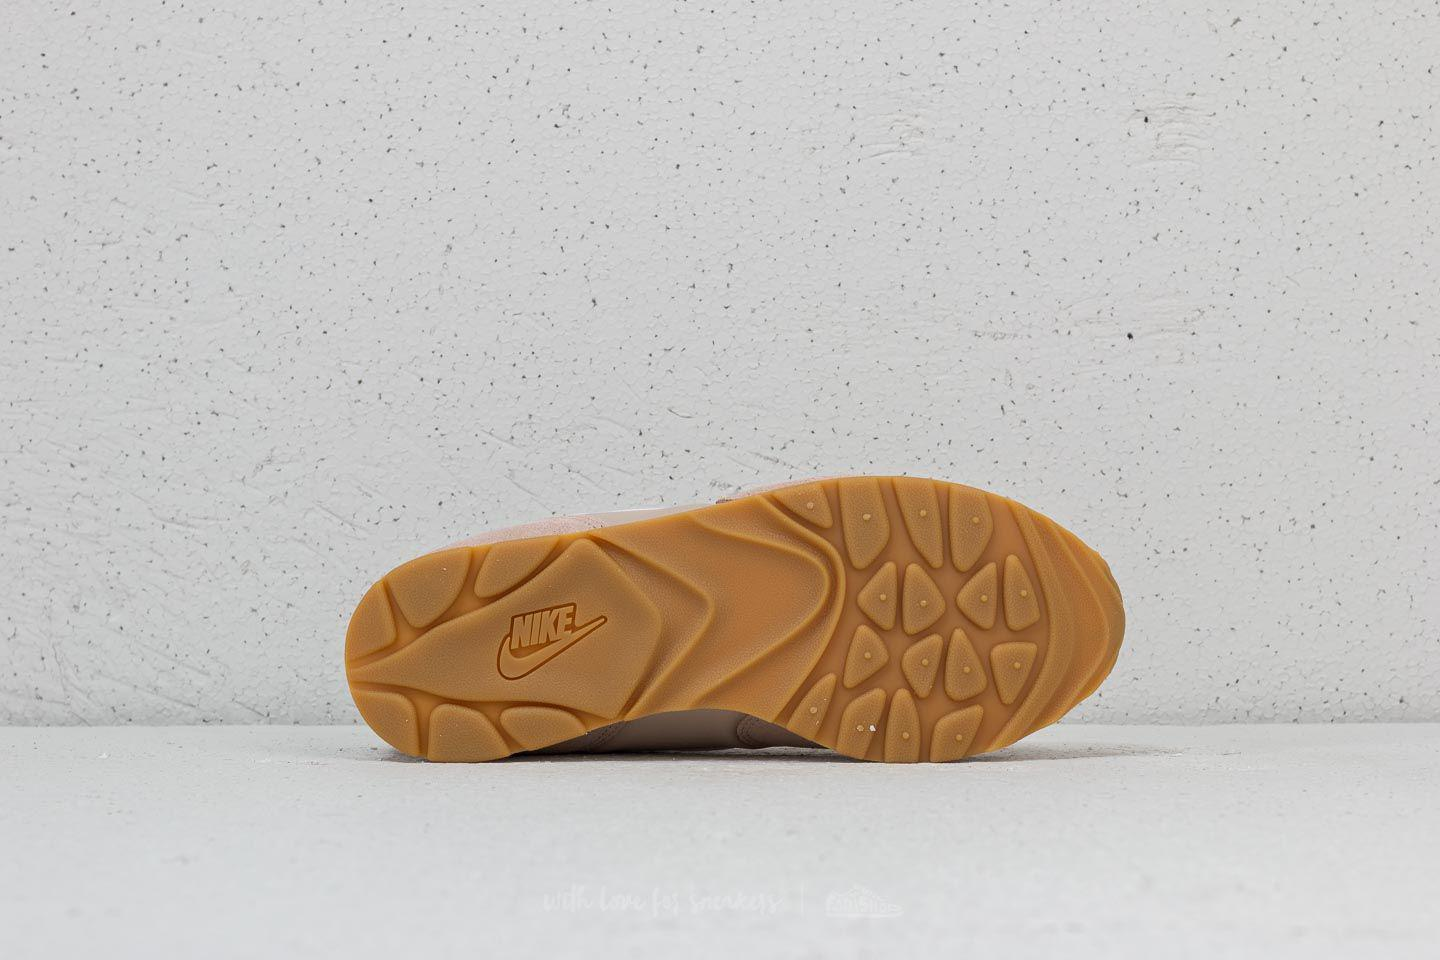 competitive price 302d1 528ab Lyst - Nike W Outburst Particle Beige  White-sand-sail in Natural